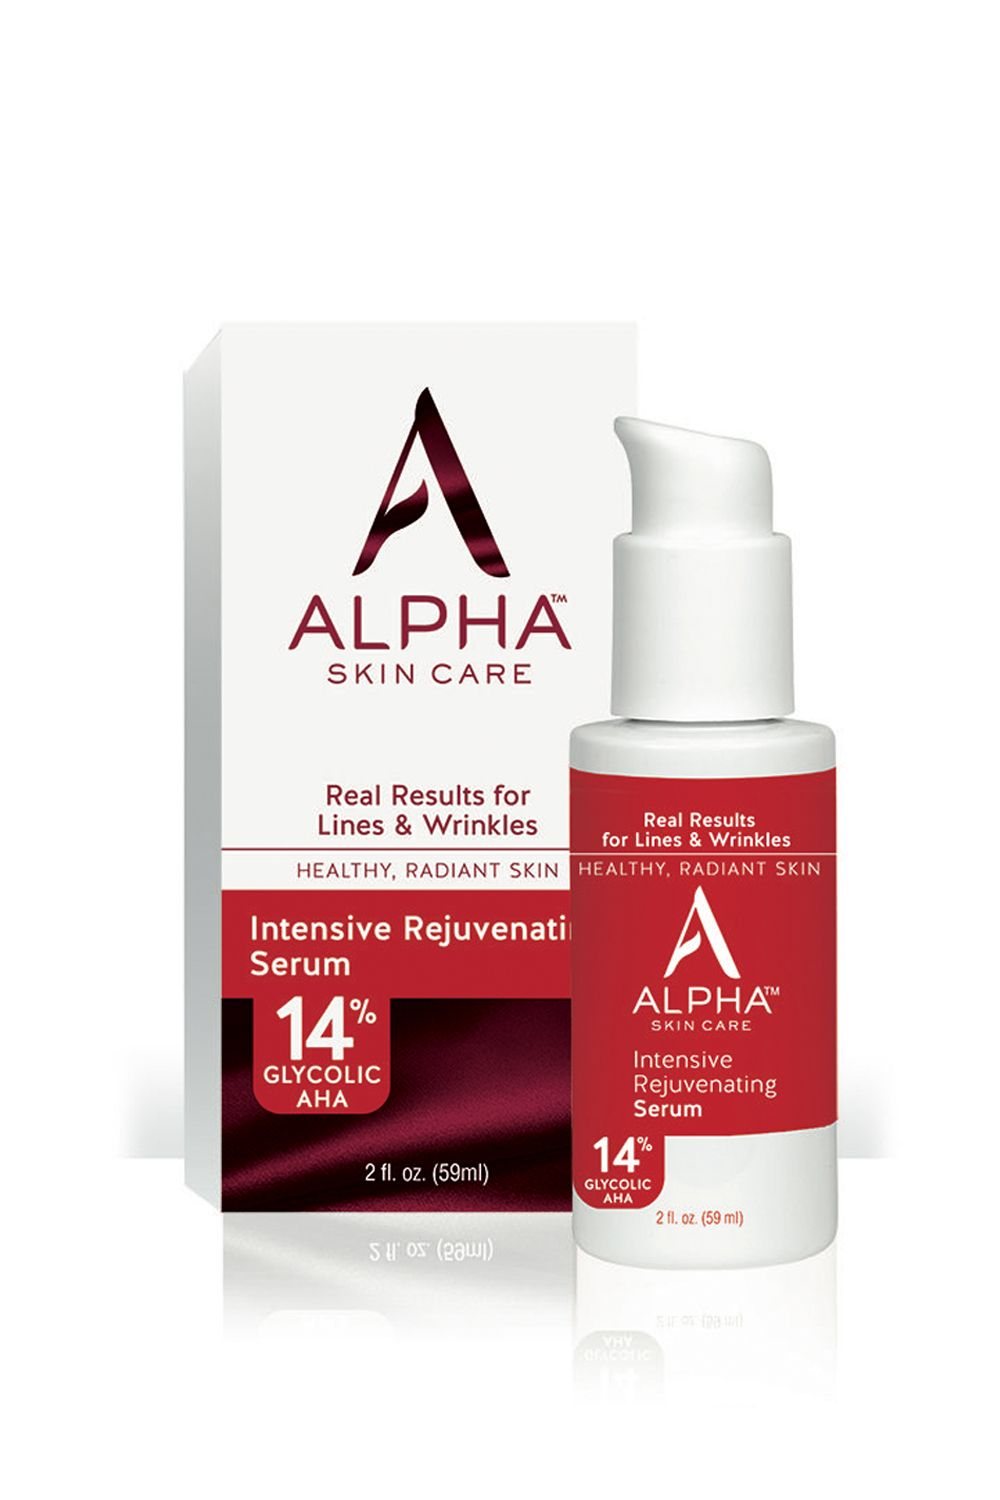 "<p>Not for the sensitive-skinned, the 14-percent glycolic acid in this night serum loosens up the glue-like bonds between your skin cells to increase turnover and generate newer, brighter, and tighter skin.</p><p><i data-redactor-tag=""i"">Alpha Skin Care Rejuvenating Serum, $18</i></p><p><strong data-redactor-tag=""strong"">BUY IT: <a href=""https://www.amazon.com/Alpha-Skin-Care-fragrance-free-paraben-free/dp/B01BW71W4W"">amazon.com</a>. </strong></p>"